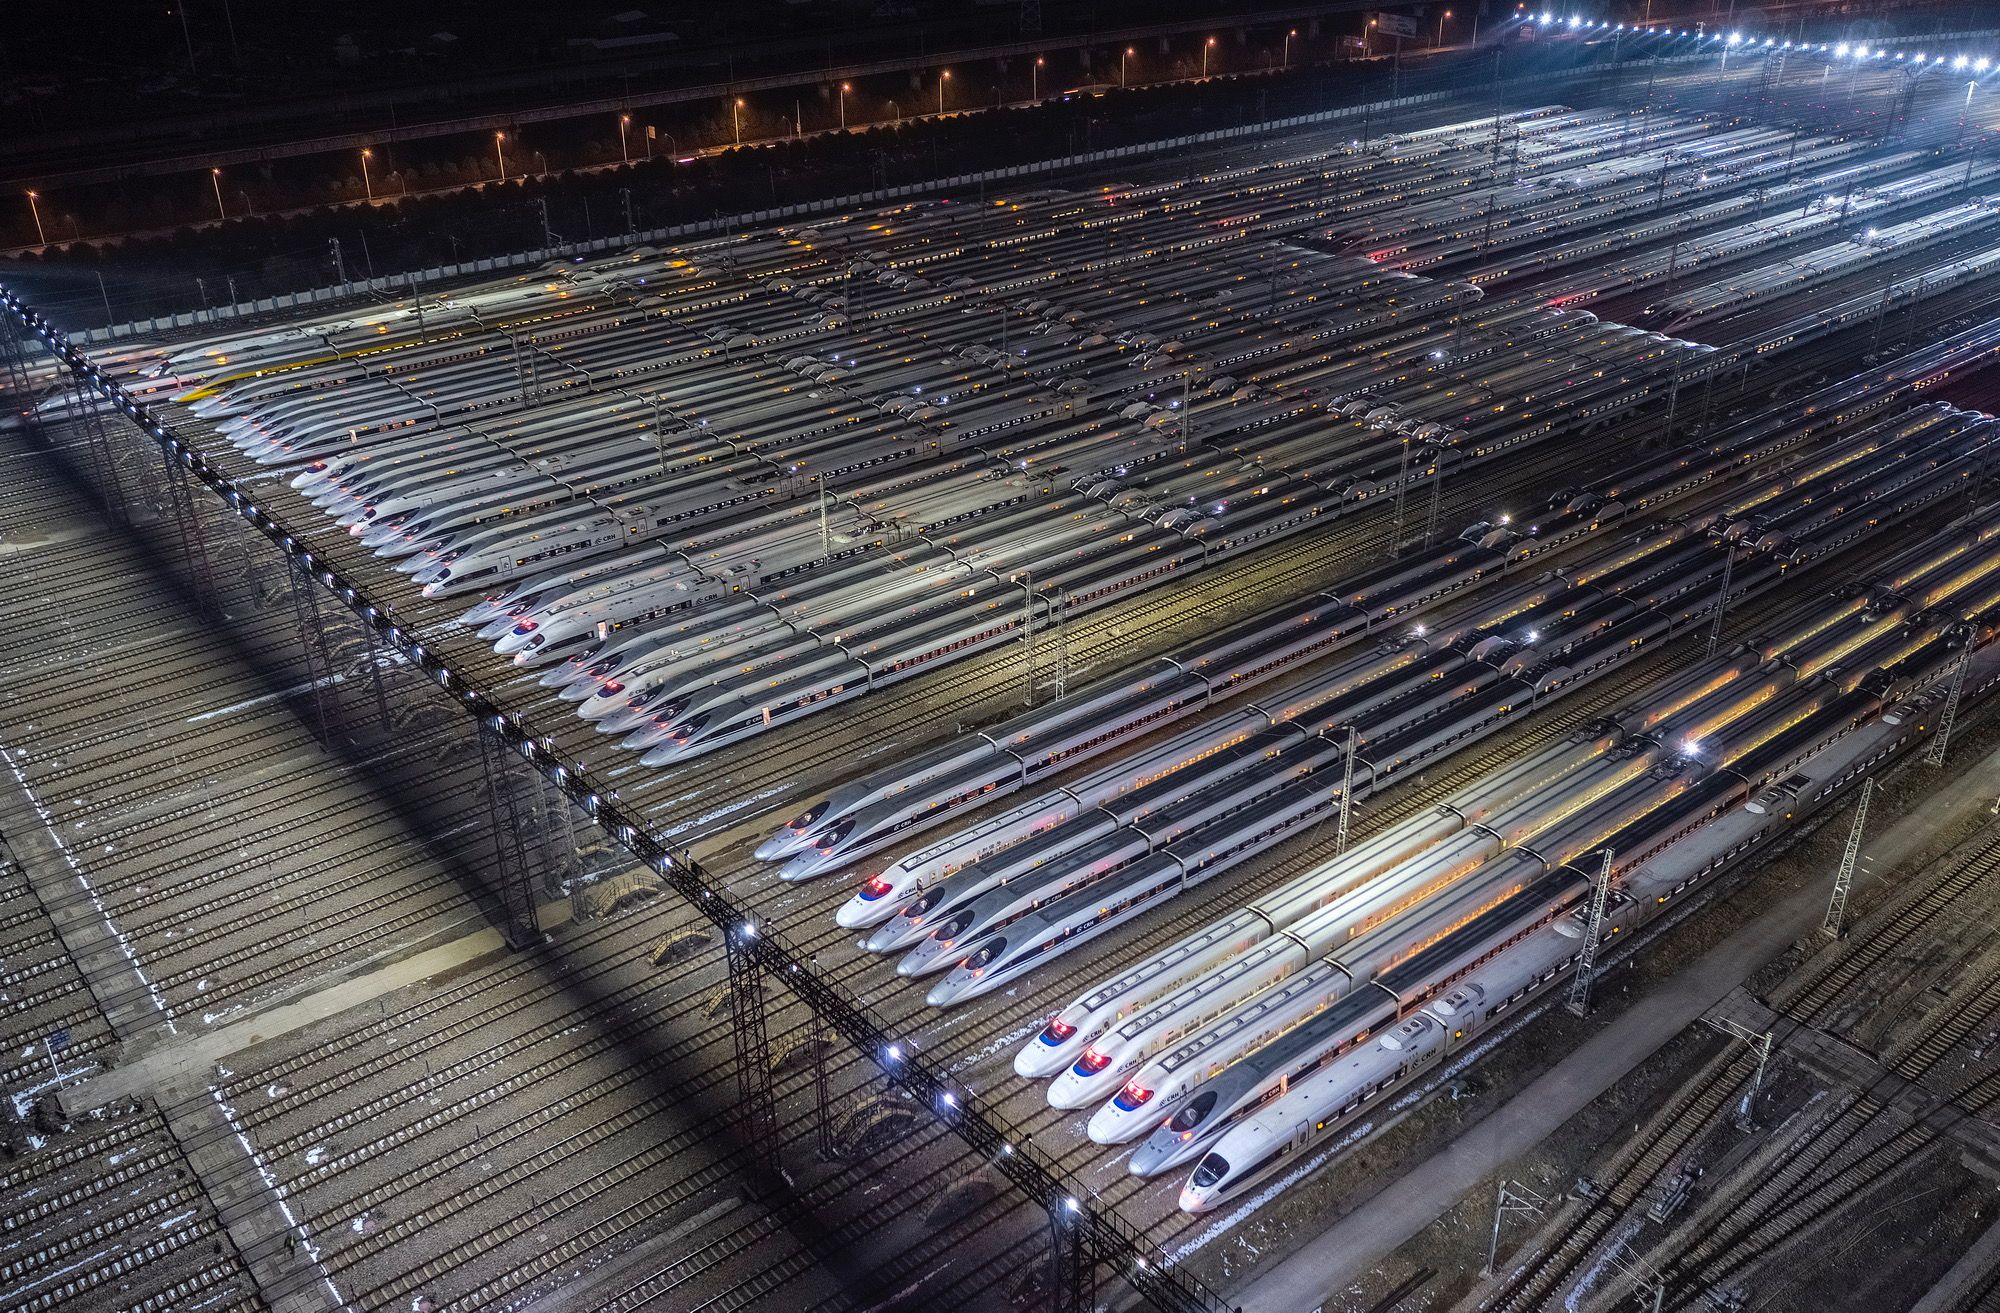 China's Wuhan high speed train depot, the world's largest